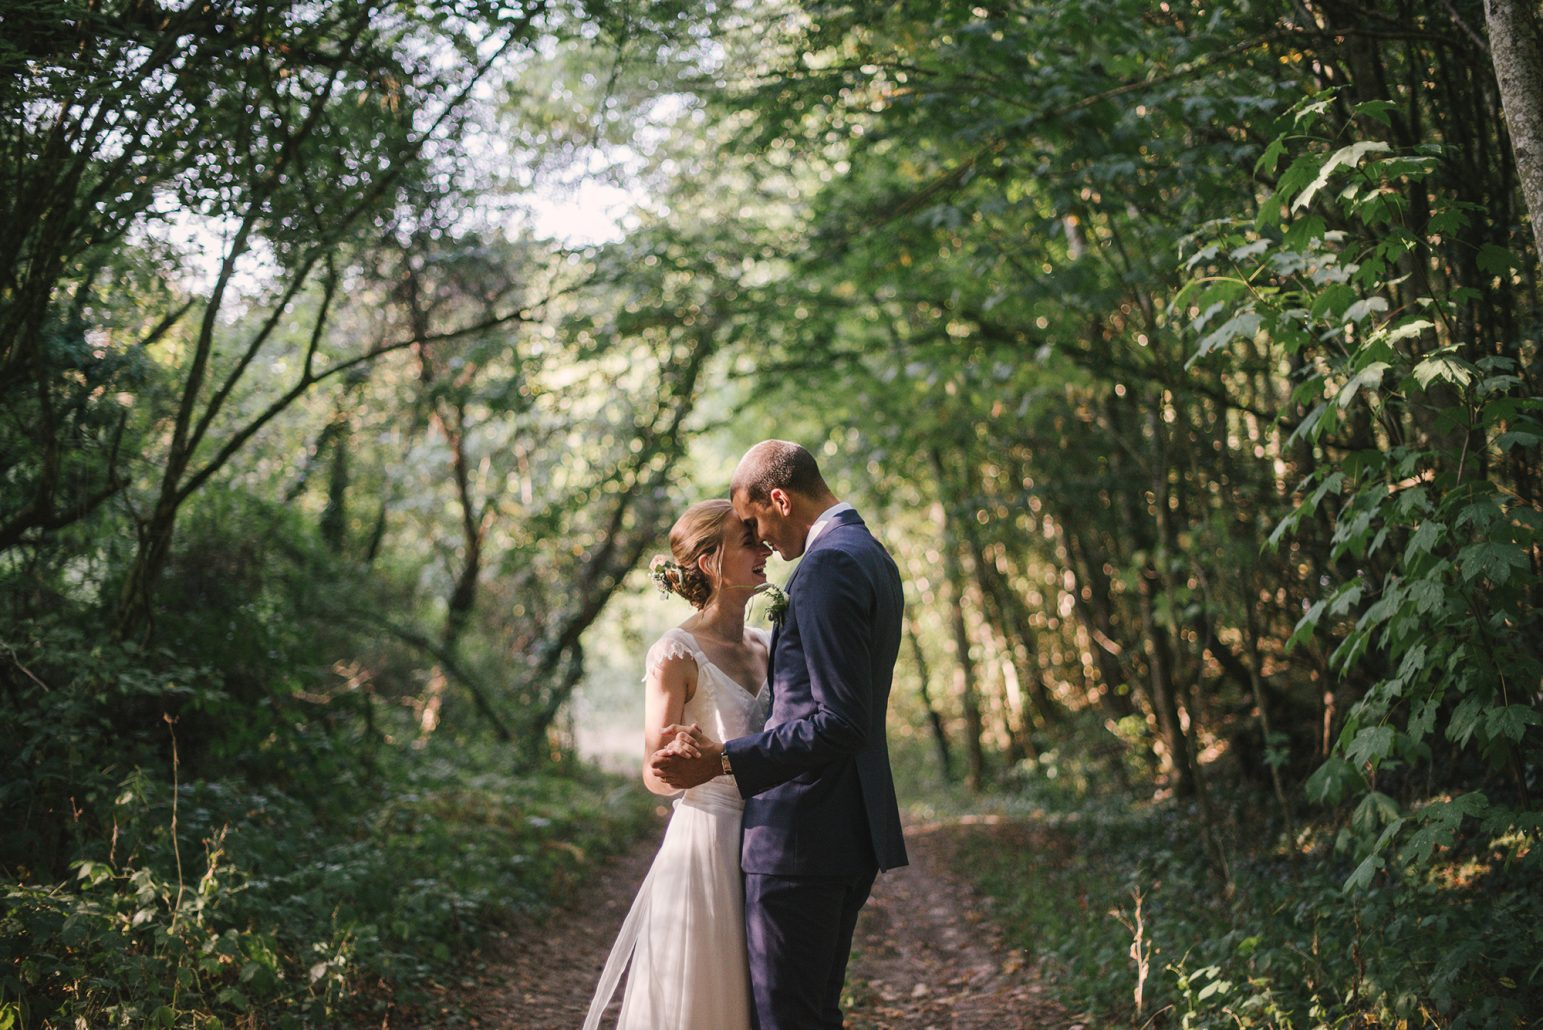 Slider accueil photographe famille seances photos mariage grossesse grenoble lyon annecy chambery